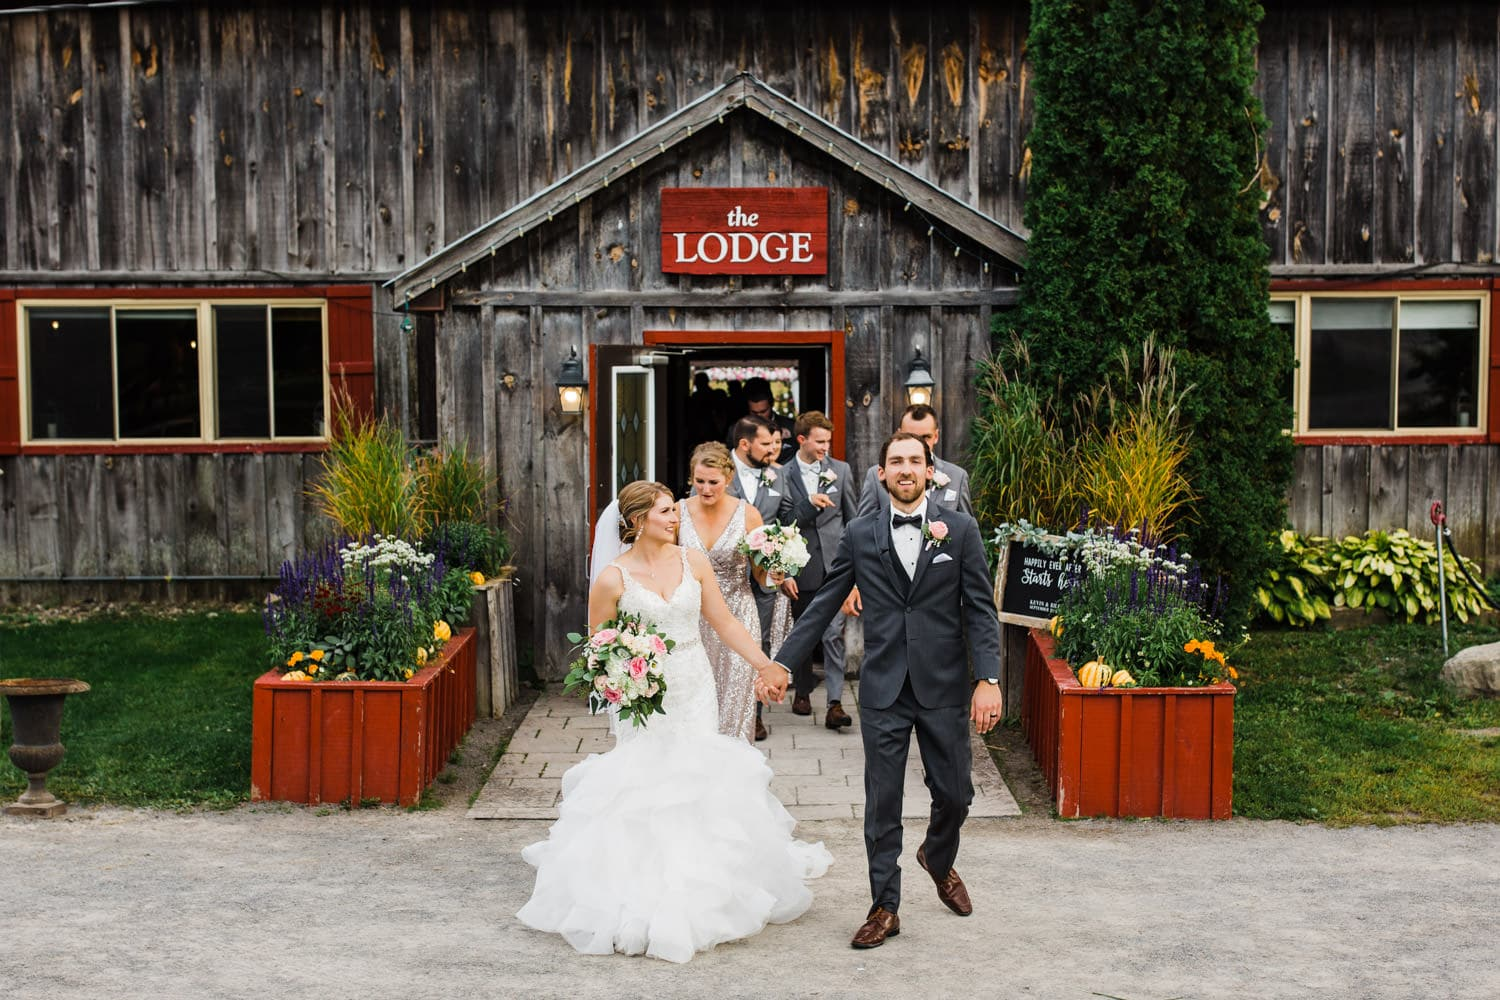 bride and groom walk out of lodge after ceremony - summer strathmere wedding